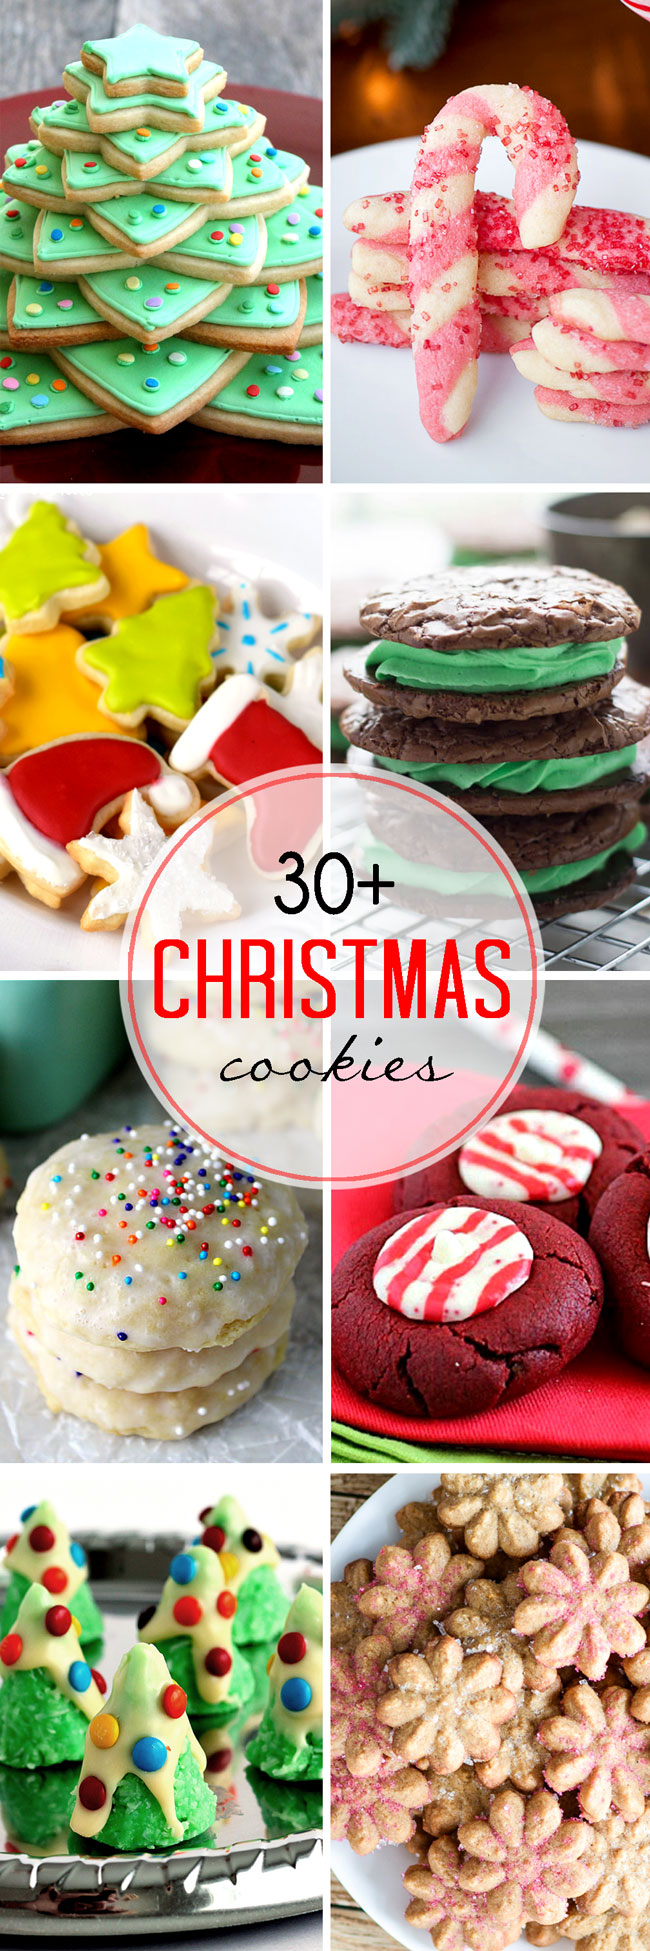 Christmas-Cookies-pinterest